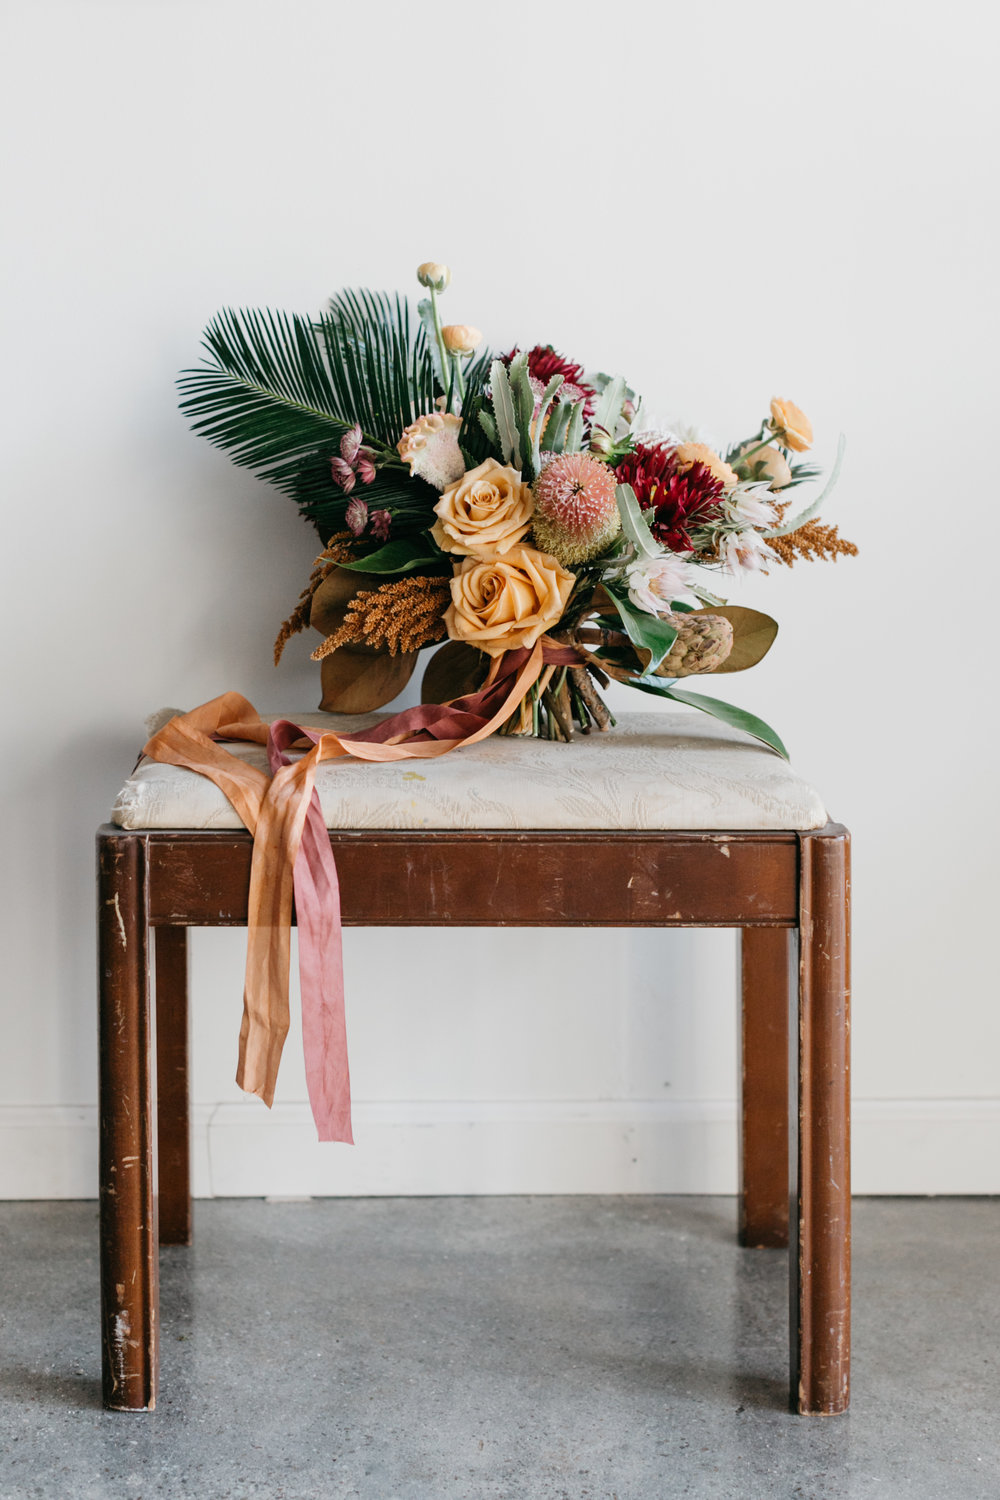 Bouquets + Boutonnieres - We believe the smallest touches make the biggest impacts, so all our bouquets are made with the setting, the dresses and the feel in mind. Then all the boutonnieres and corsages are made to compliment.